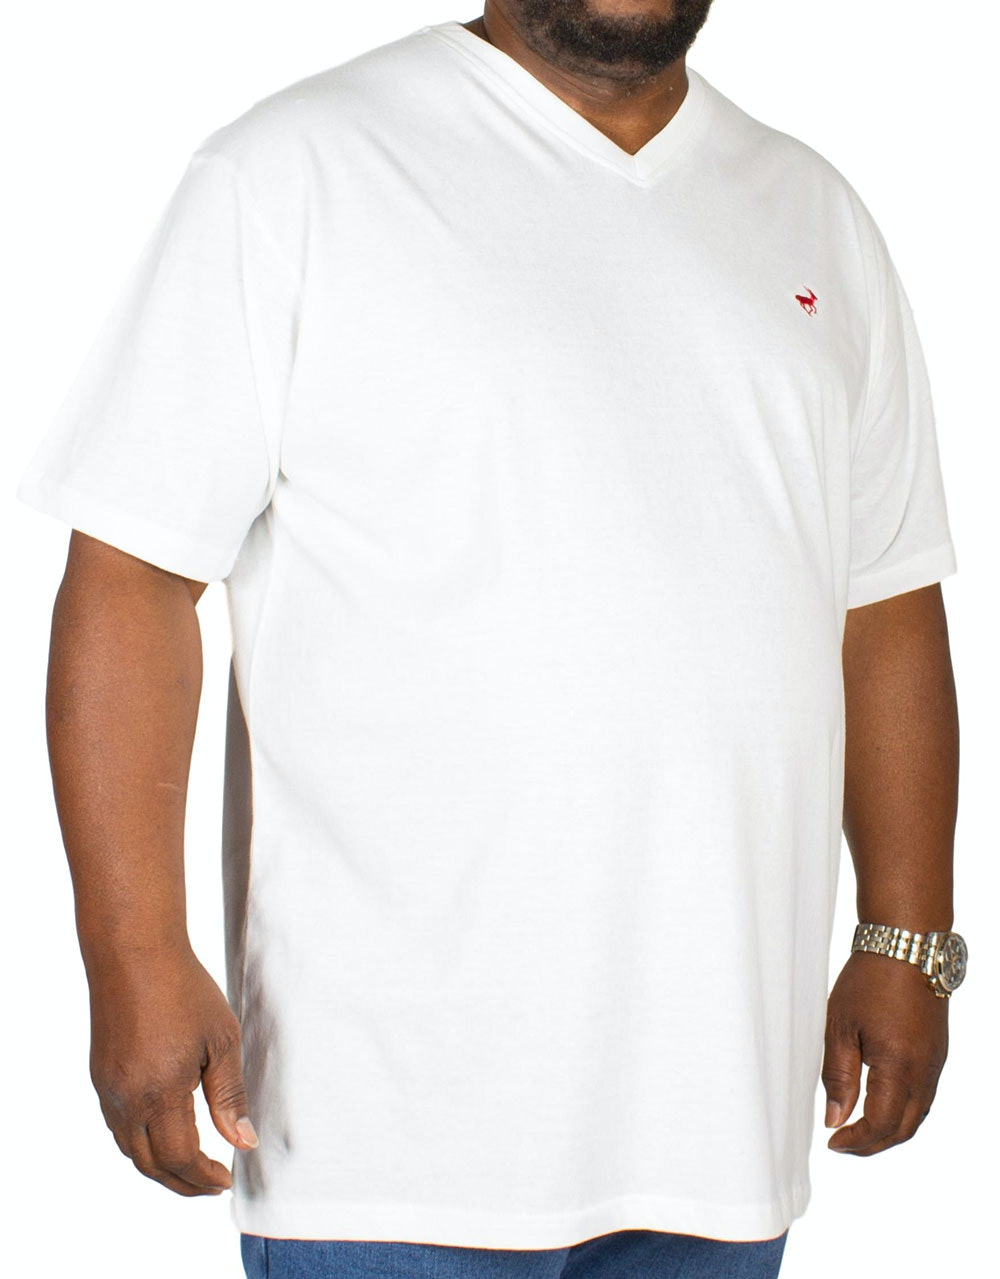 Bigdude Signature V-Neck T-Shirt Off White Tall